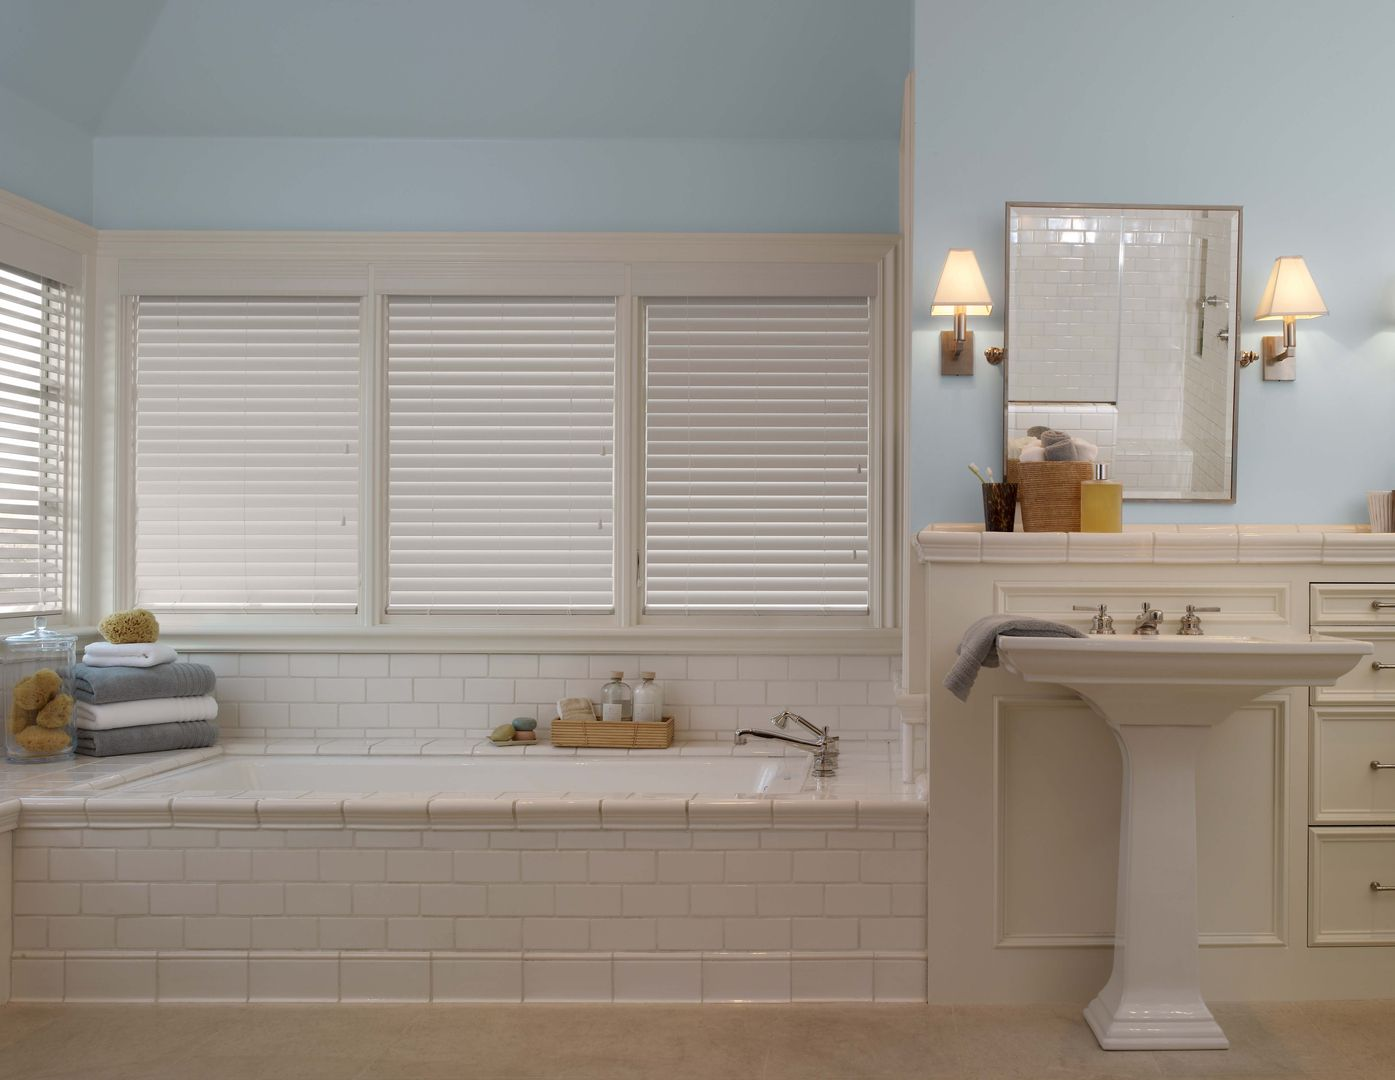 central shades hybrid style get installed by a alta the for on blinds look sunroom images window pinterest collection bbclermont best enlightened new price from of budget cellular roman sk east better coverings latour